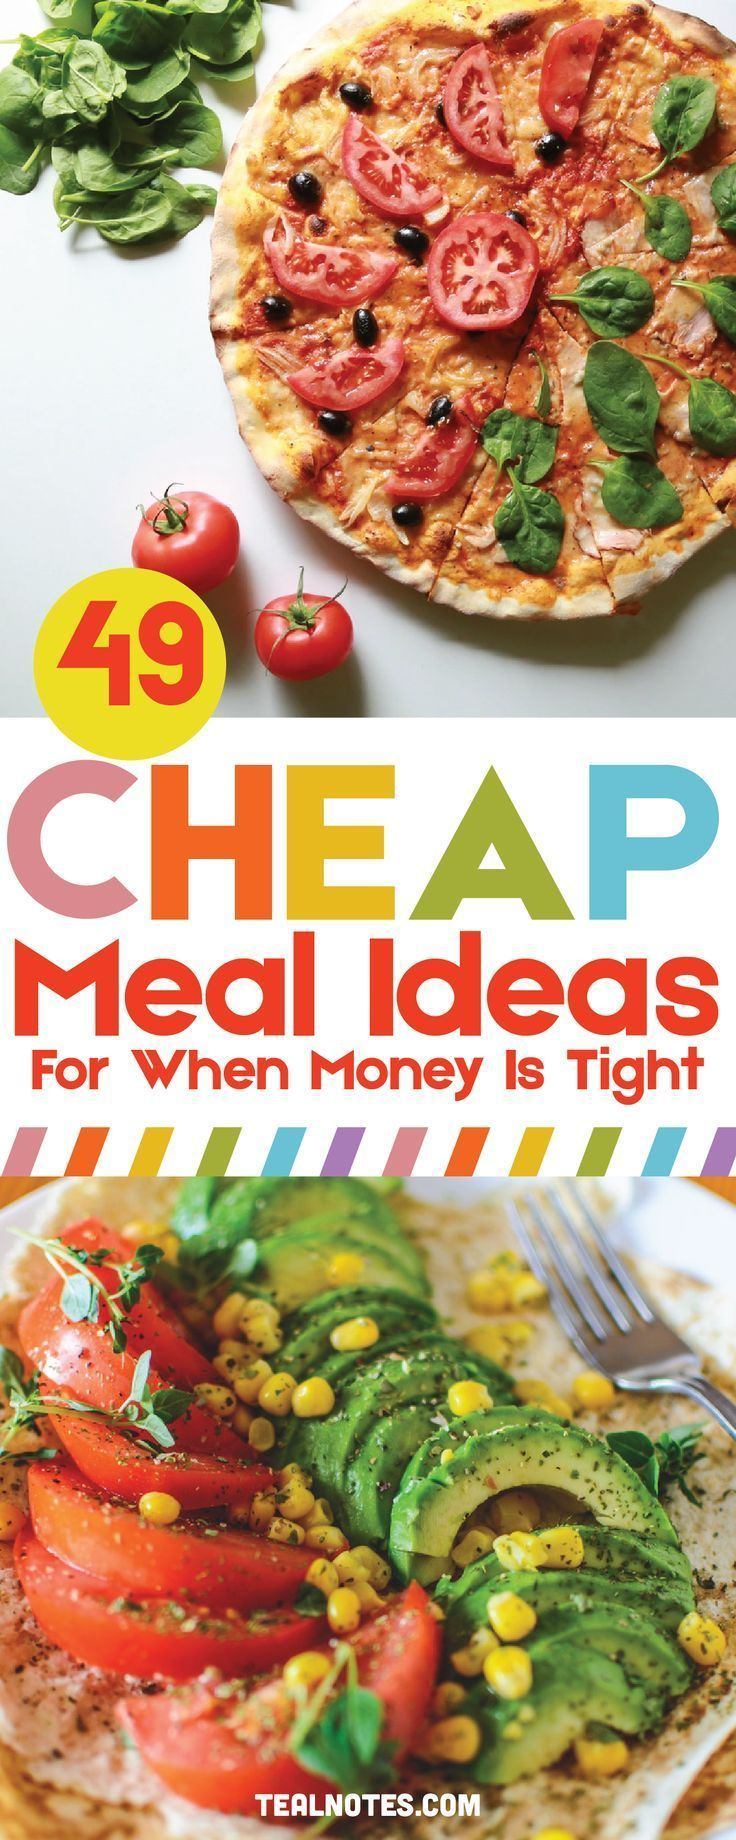 49 Cheap Dinner Ideas To Stay Within Your Meal Budget— Quick And Easy Dinner Recipes images